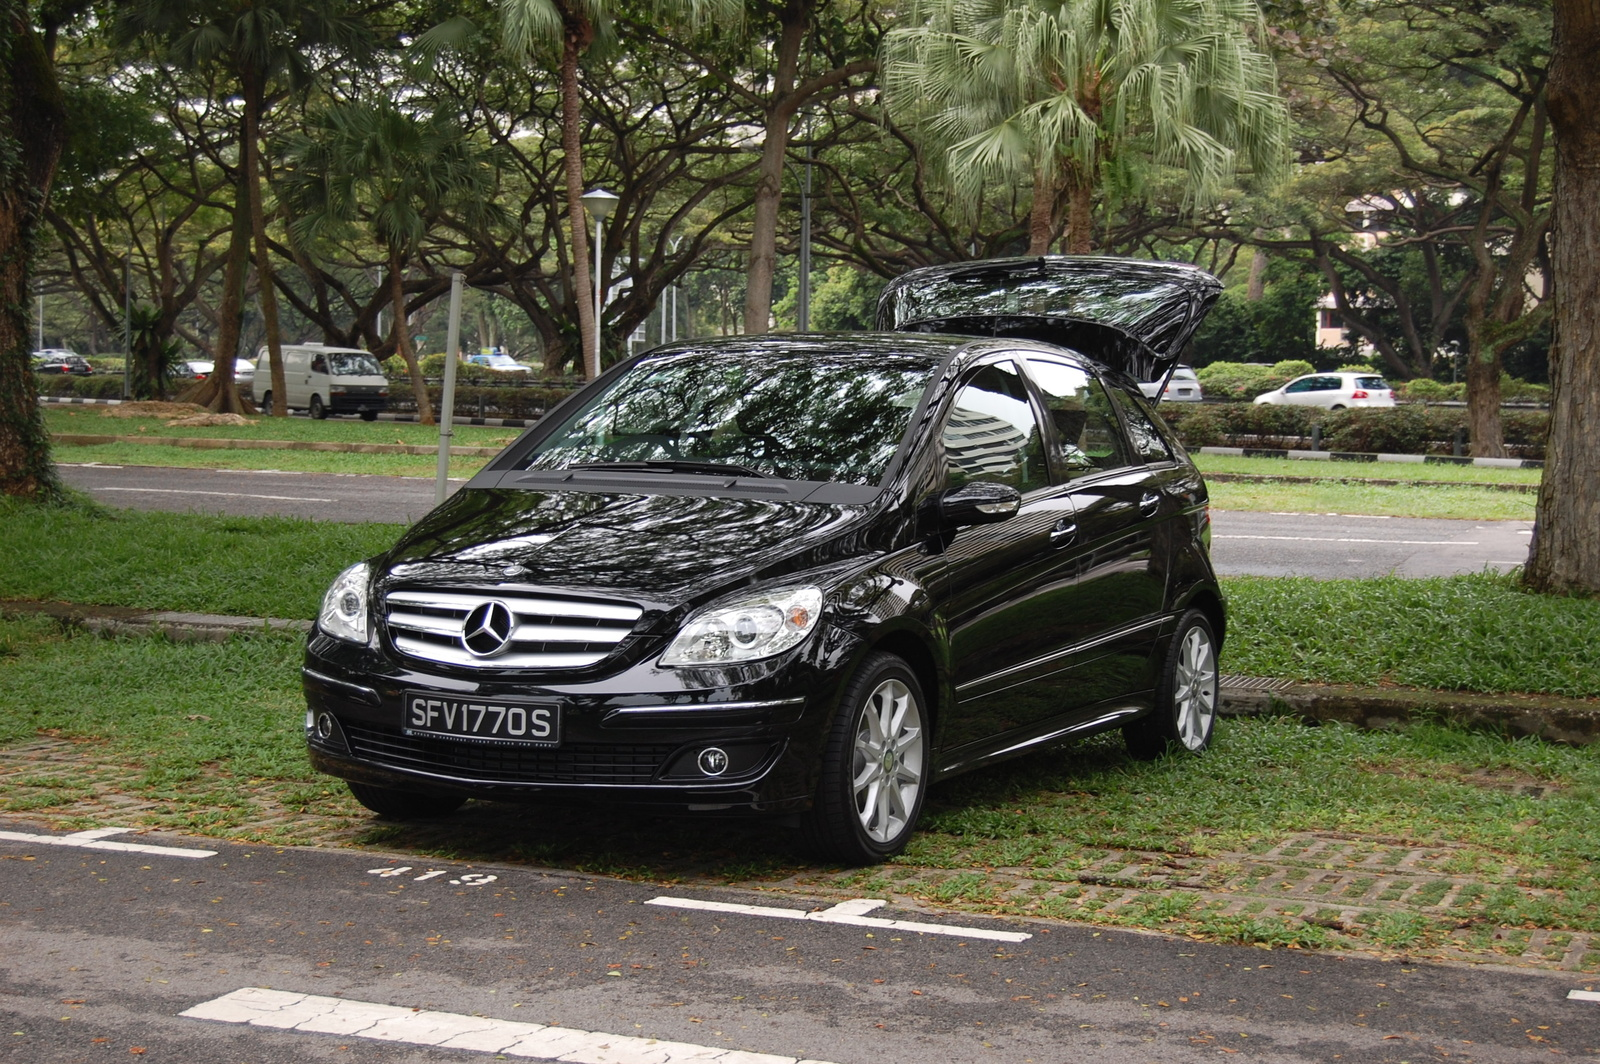 mercedes benz b170 picture 10 reviews news specs buy car. Black Bedroom Furniture Sets. Home Design Ideas